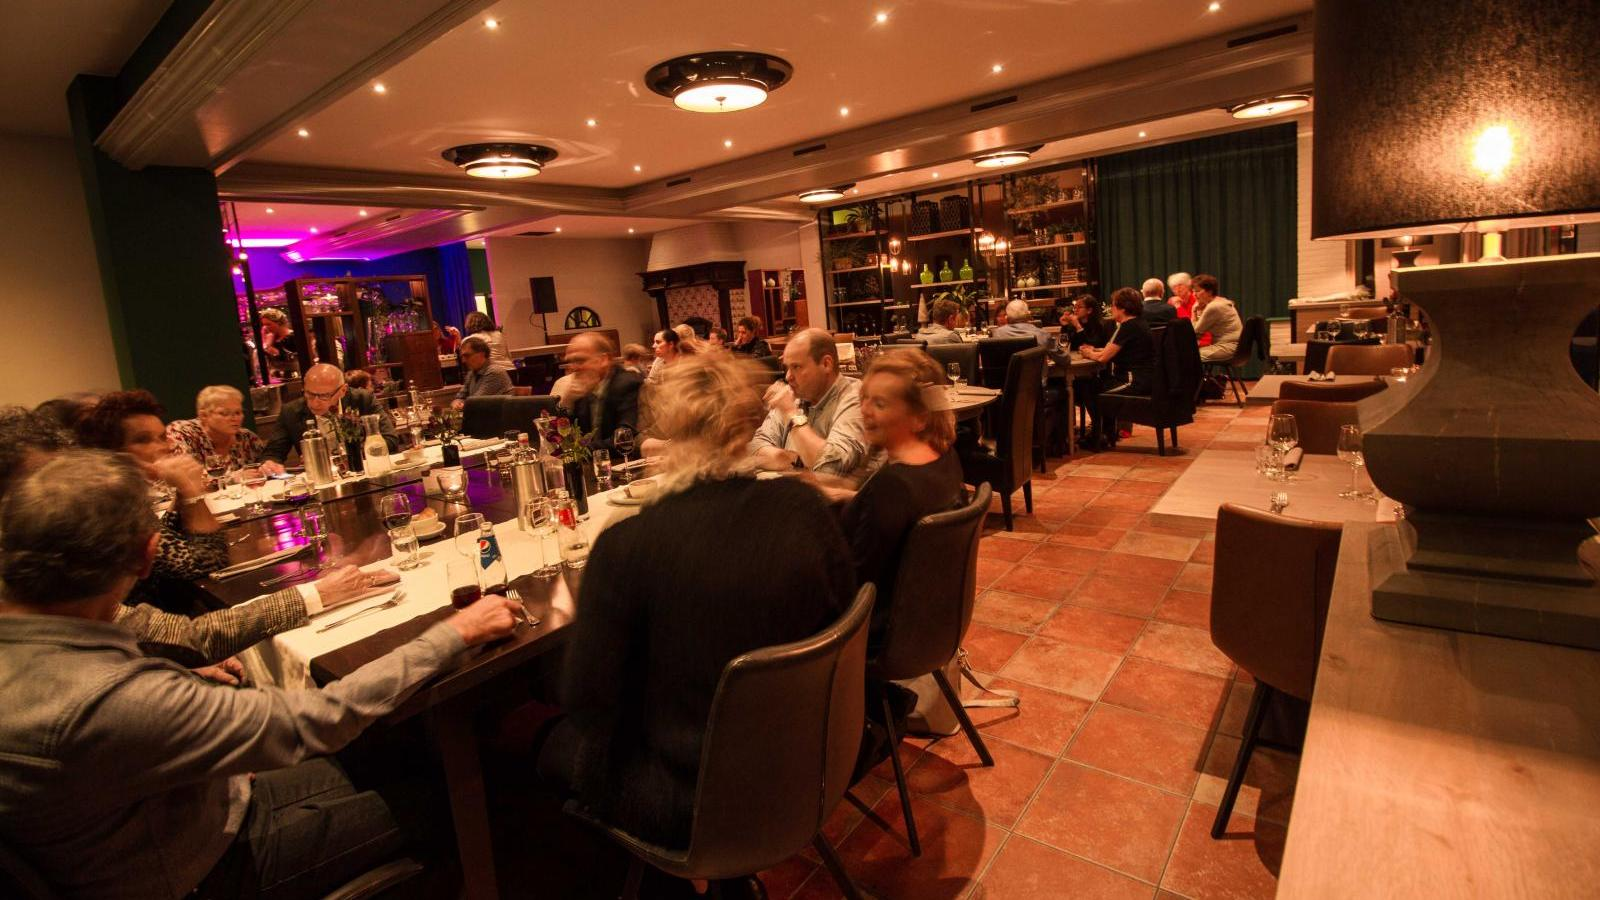 Restaurant Samen: When you will come to enjoy together?